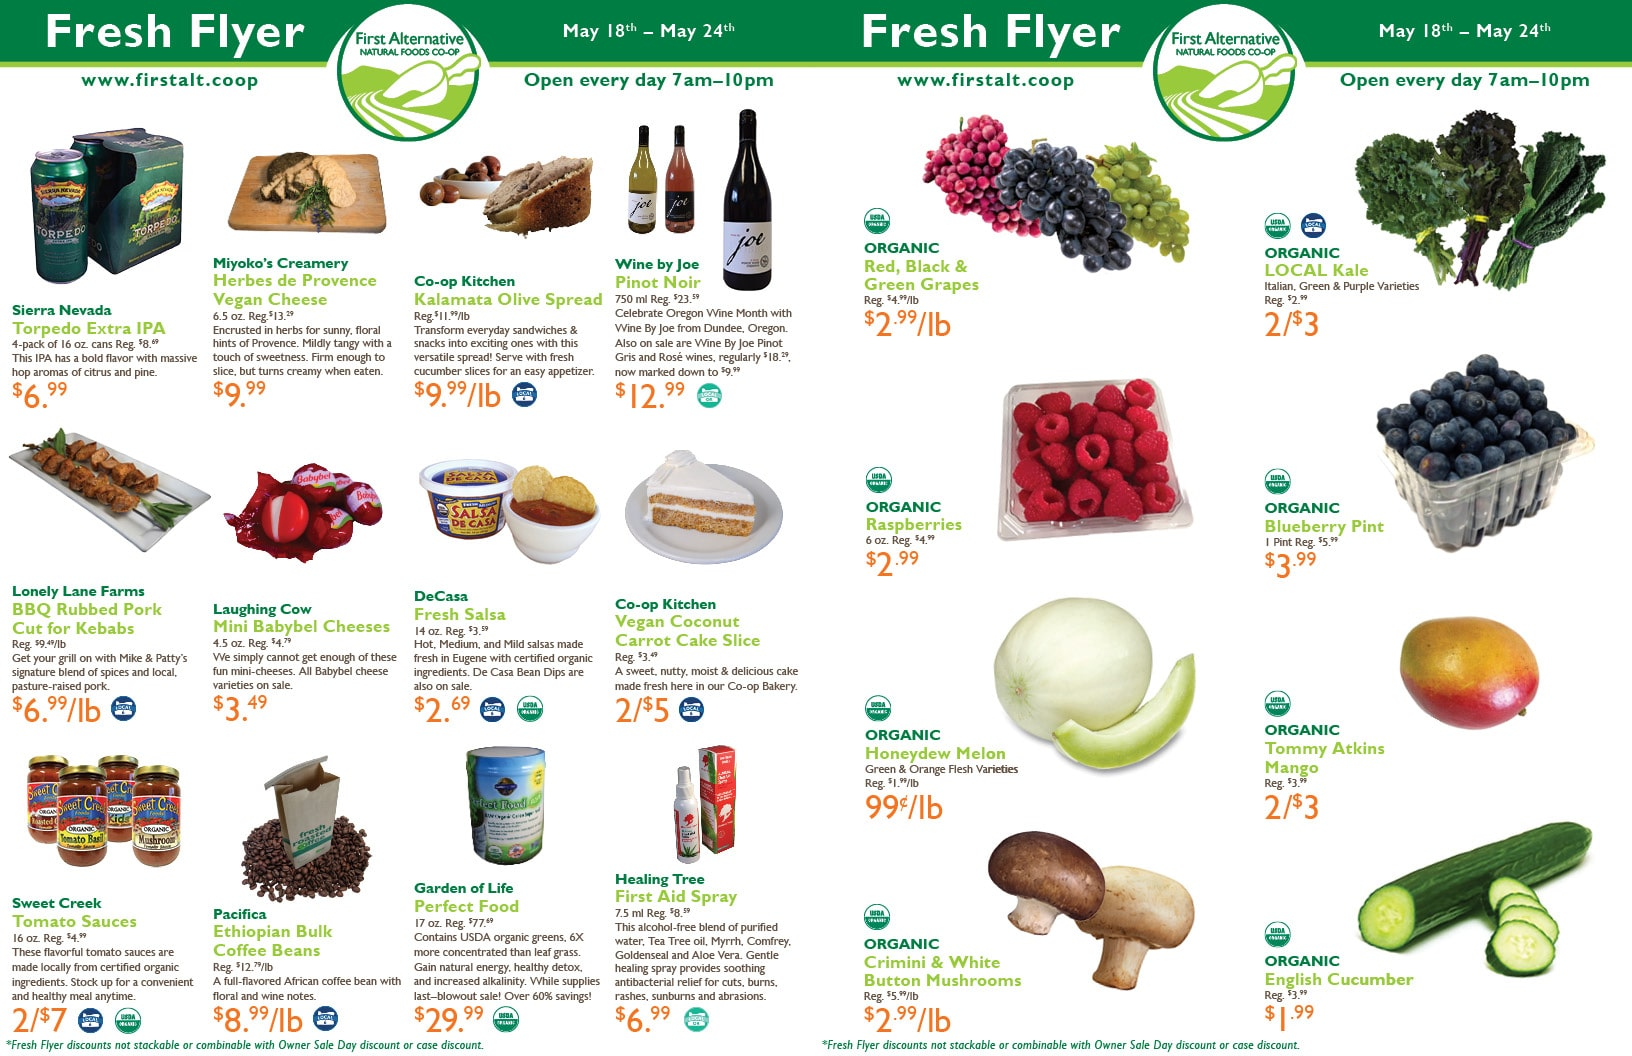 First Alternative Co-op Fresh Flyer May 18-24